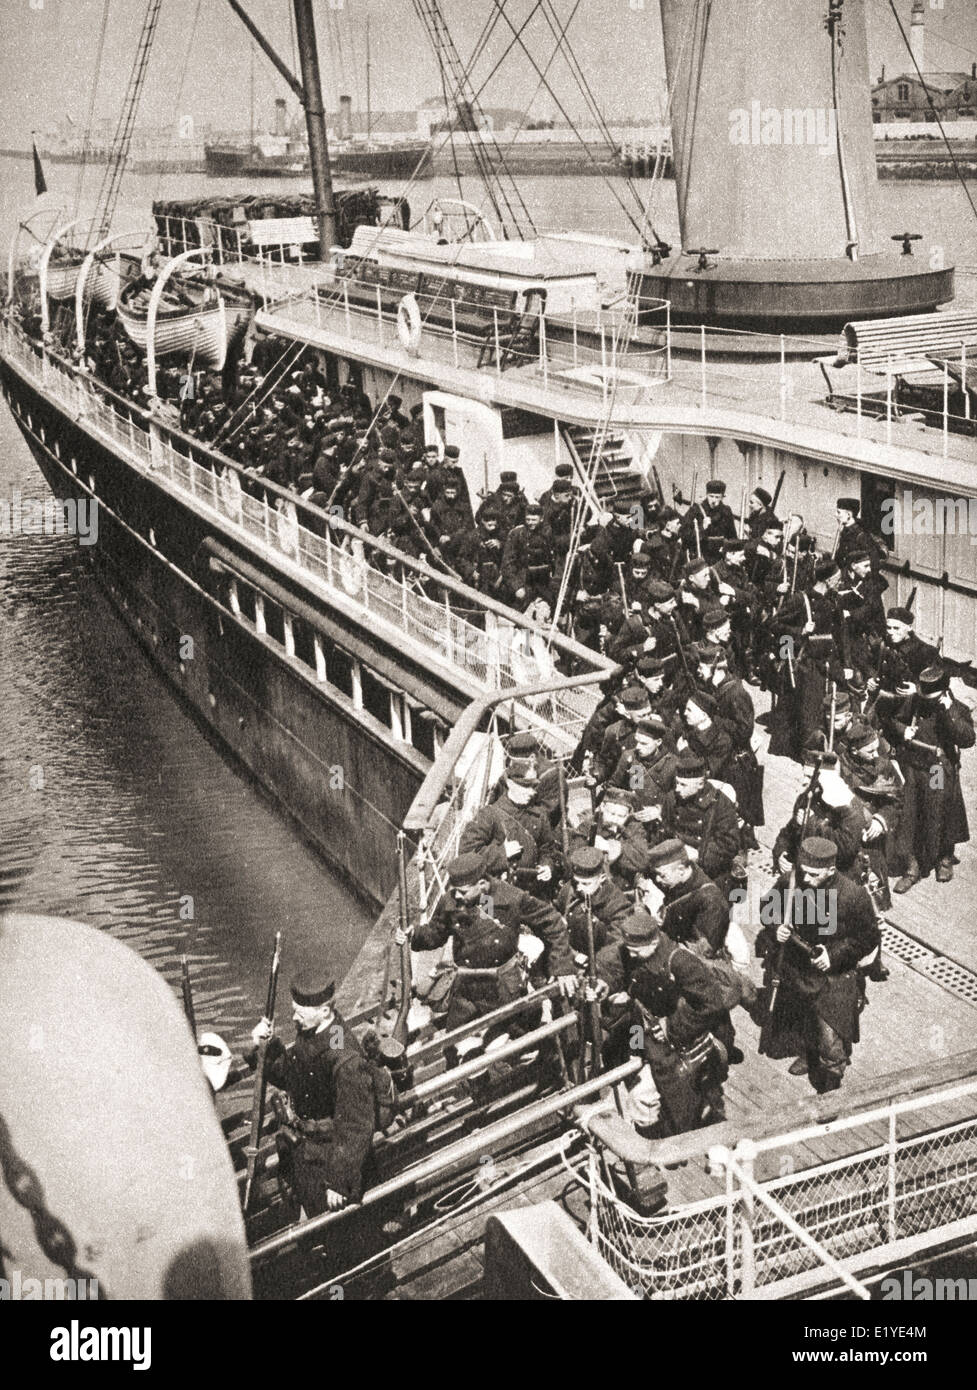 Belgian soldiers landing in Ostend under British supervision, 1914, to defend the port against the approaching enemy. - Stock Image